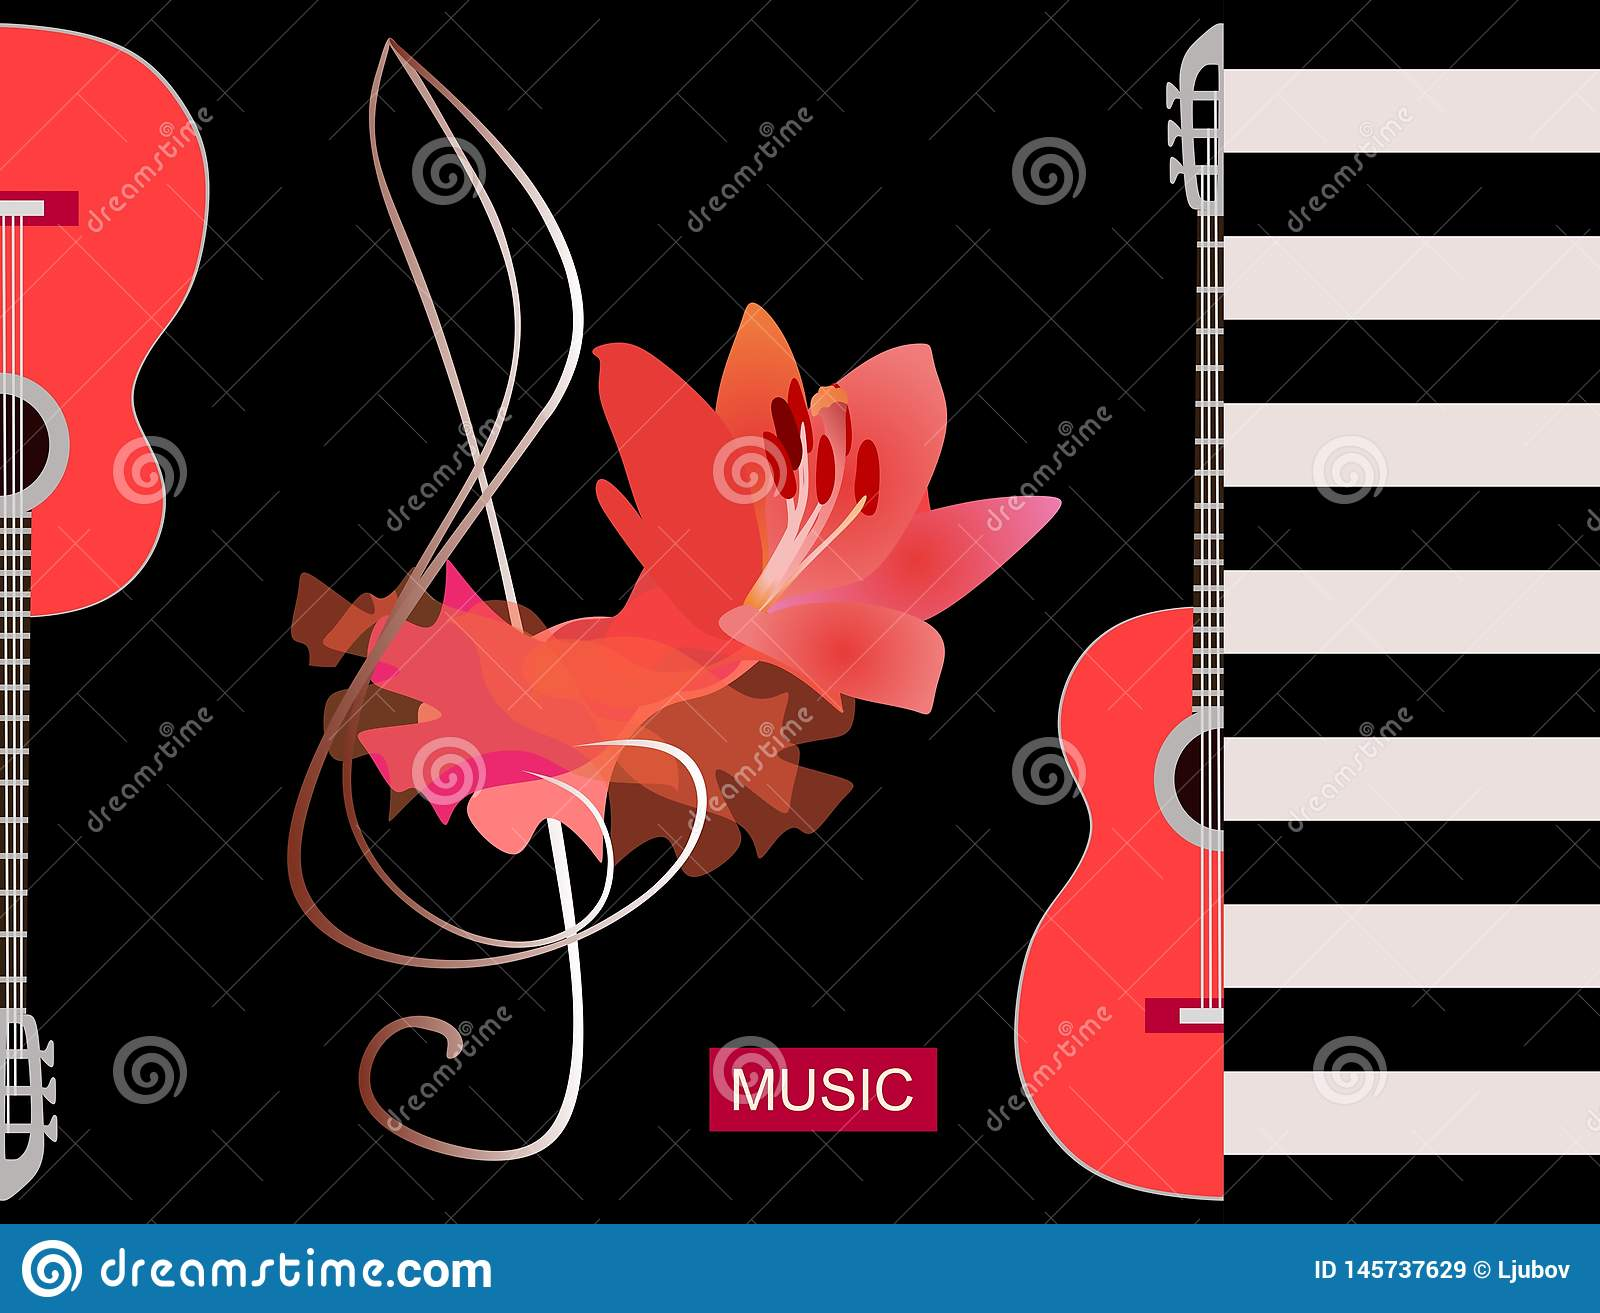 Flamenco musical logo. Luxury red piece of cloth, big lily flower and silhouette half of guitars on black background. Concert